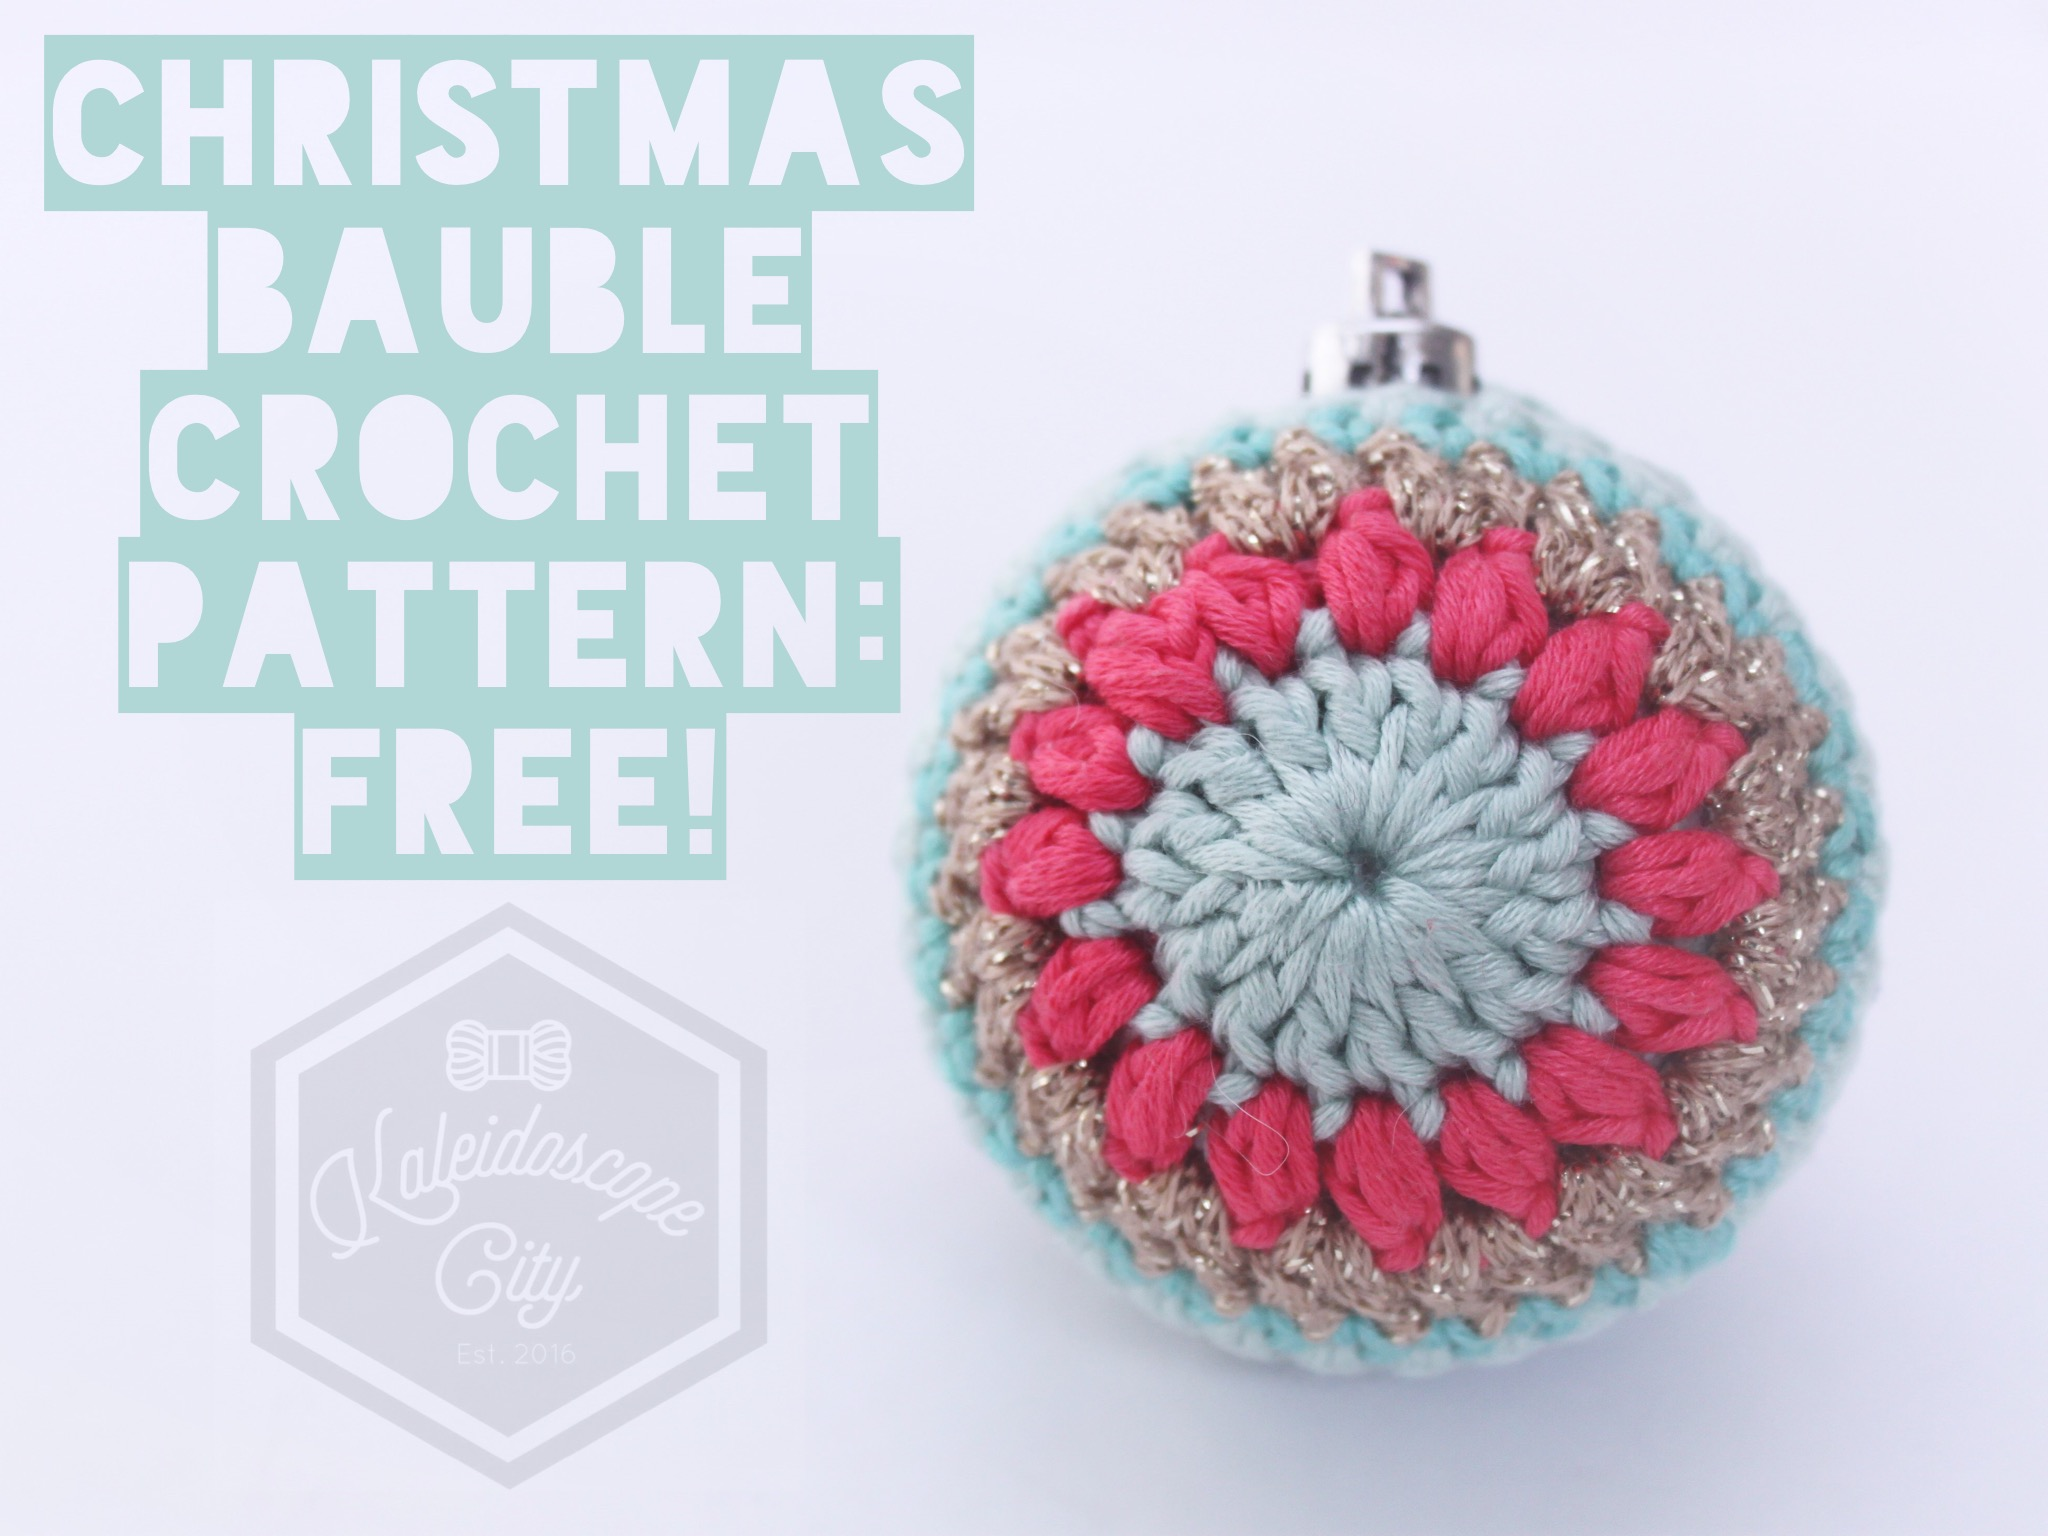 Christmas Bauble Crochet Pattern | Kaleidoscope City | www.kaleidoscopecity.wordpress.com/blog